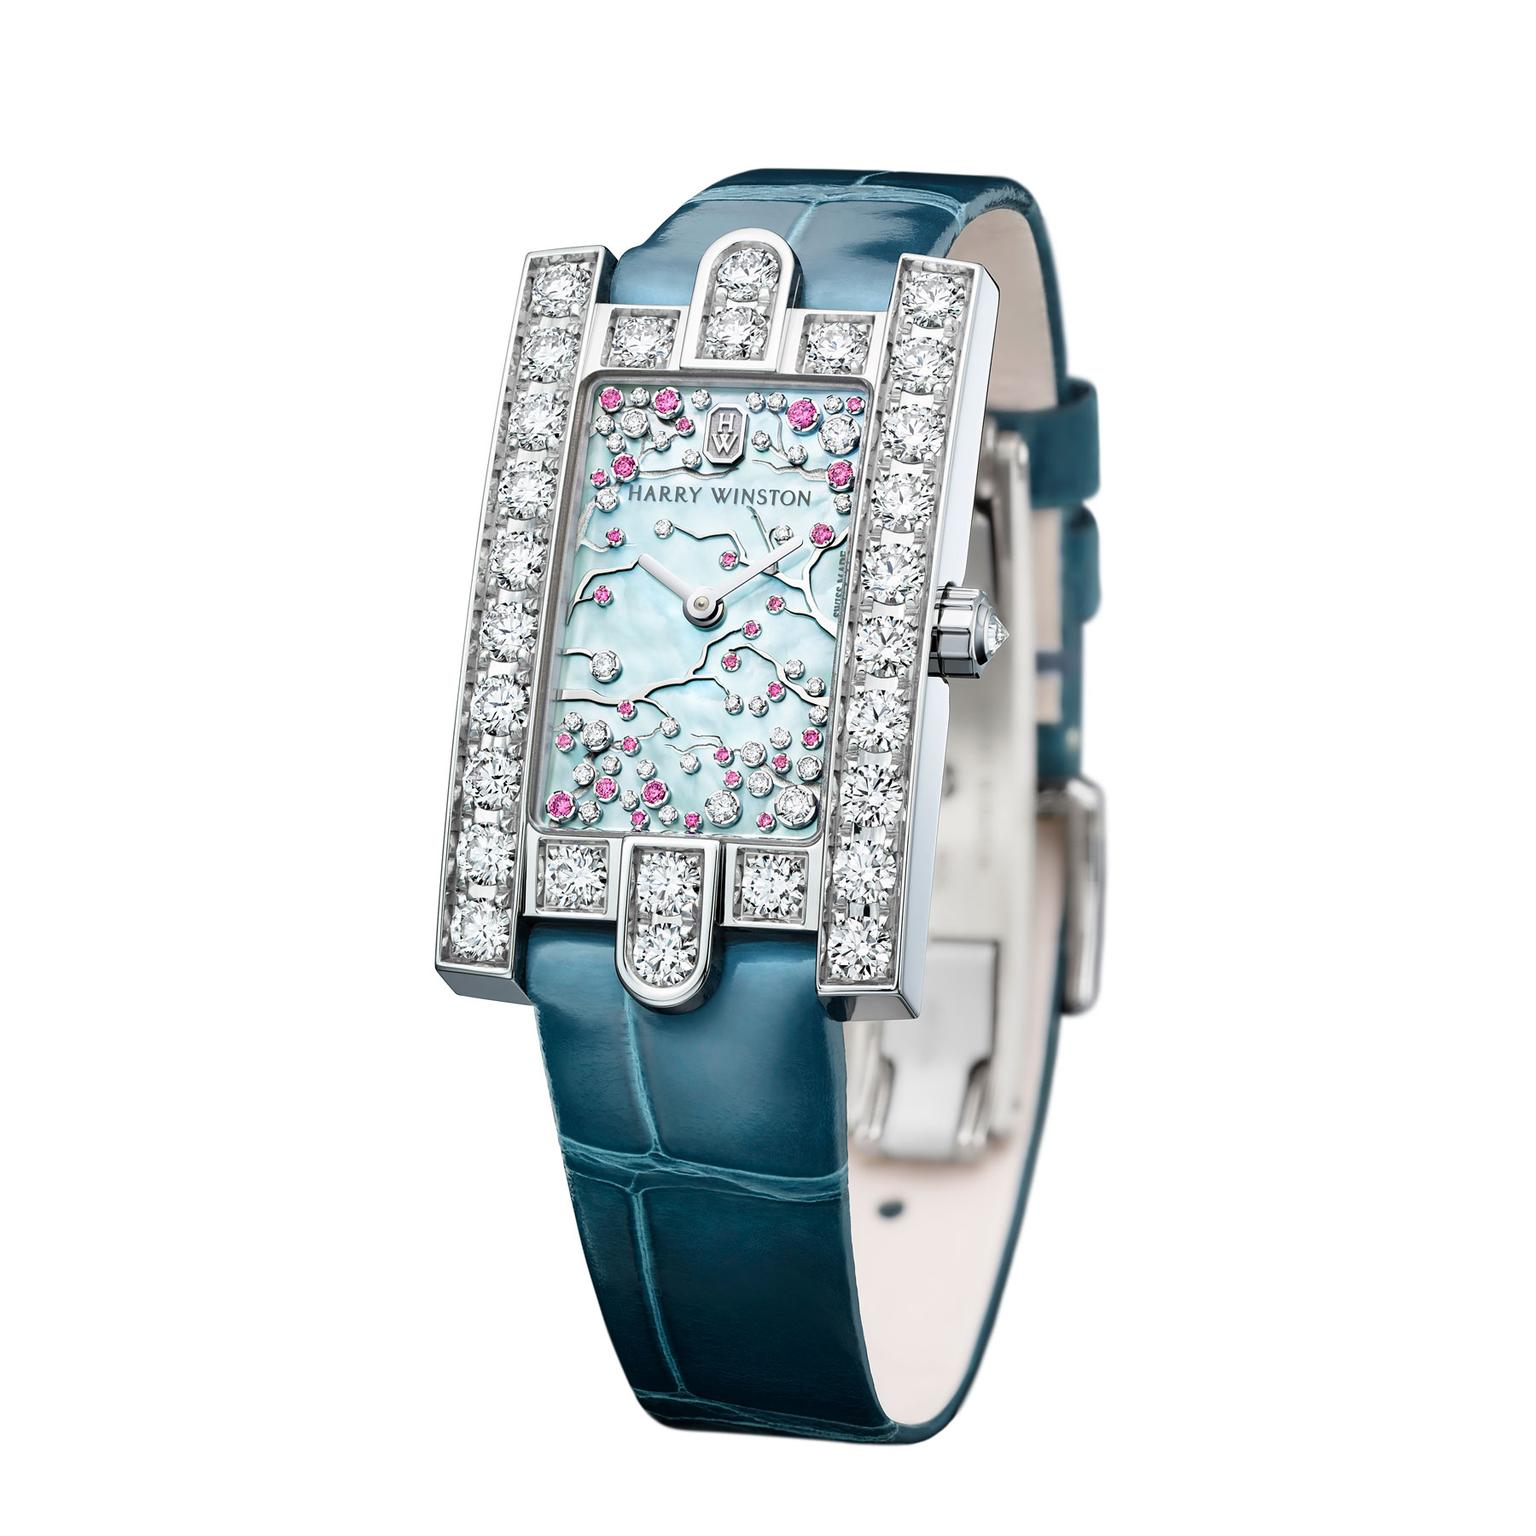 Harry Winston Avenue Classic Cherry Blossom watch